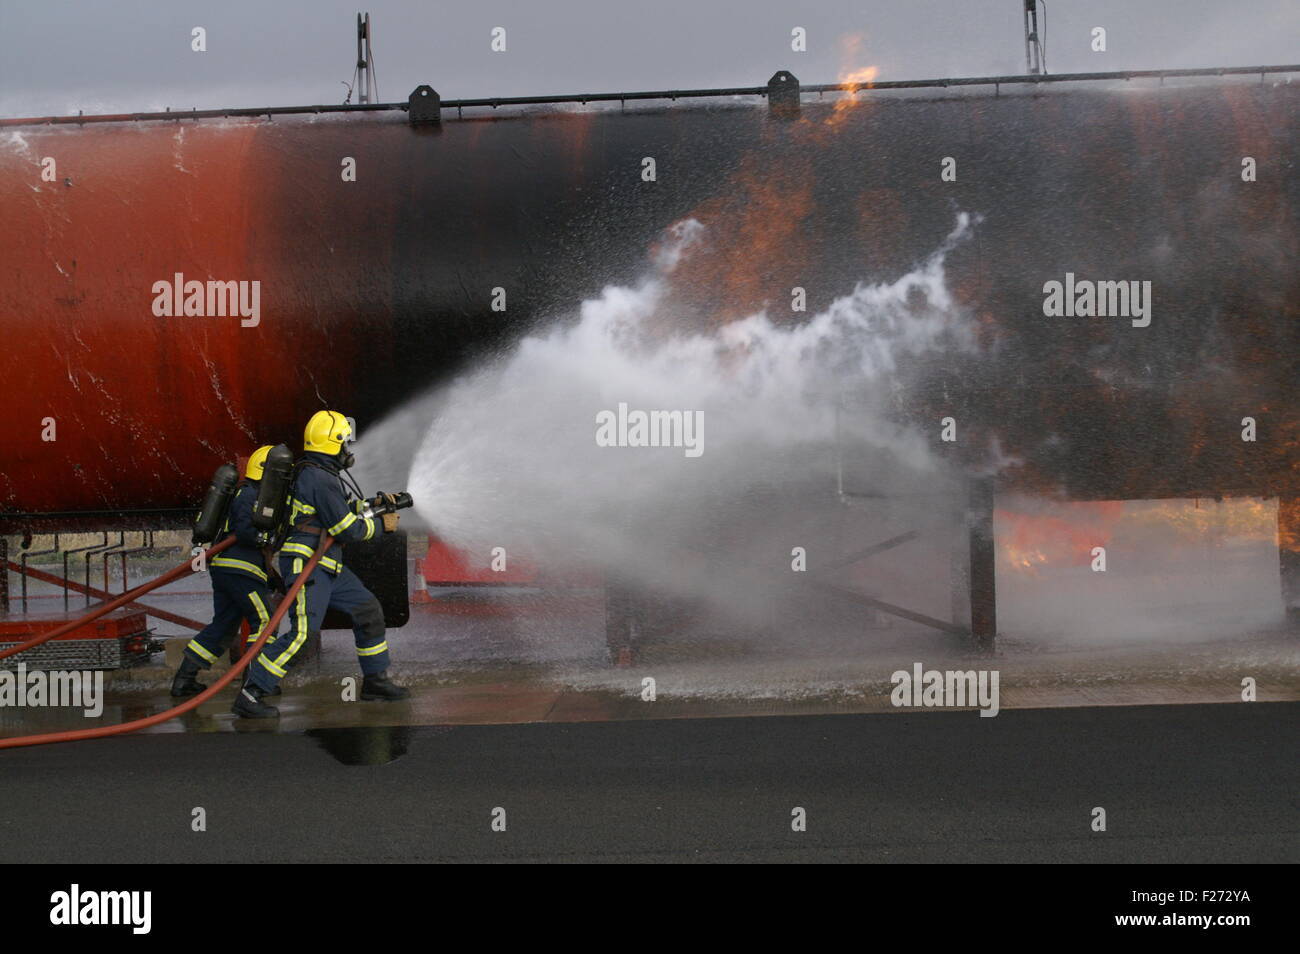 fire fighters fighting fire with hose - Stock Image